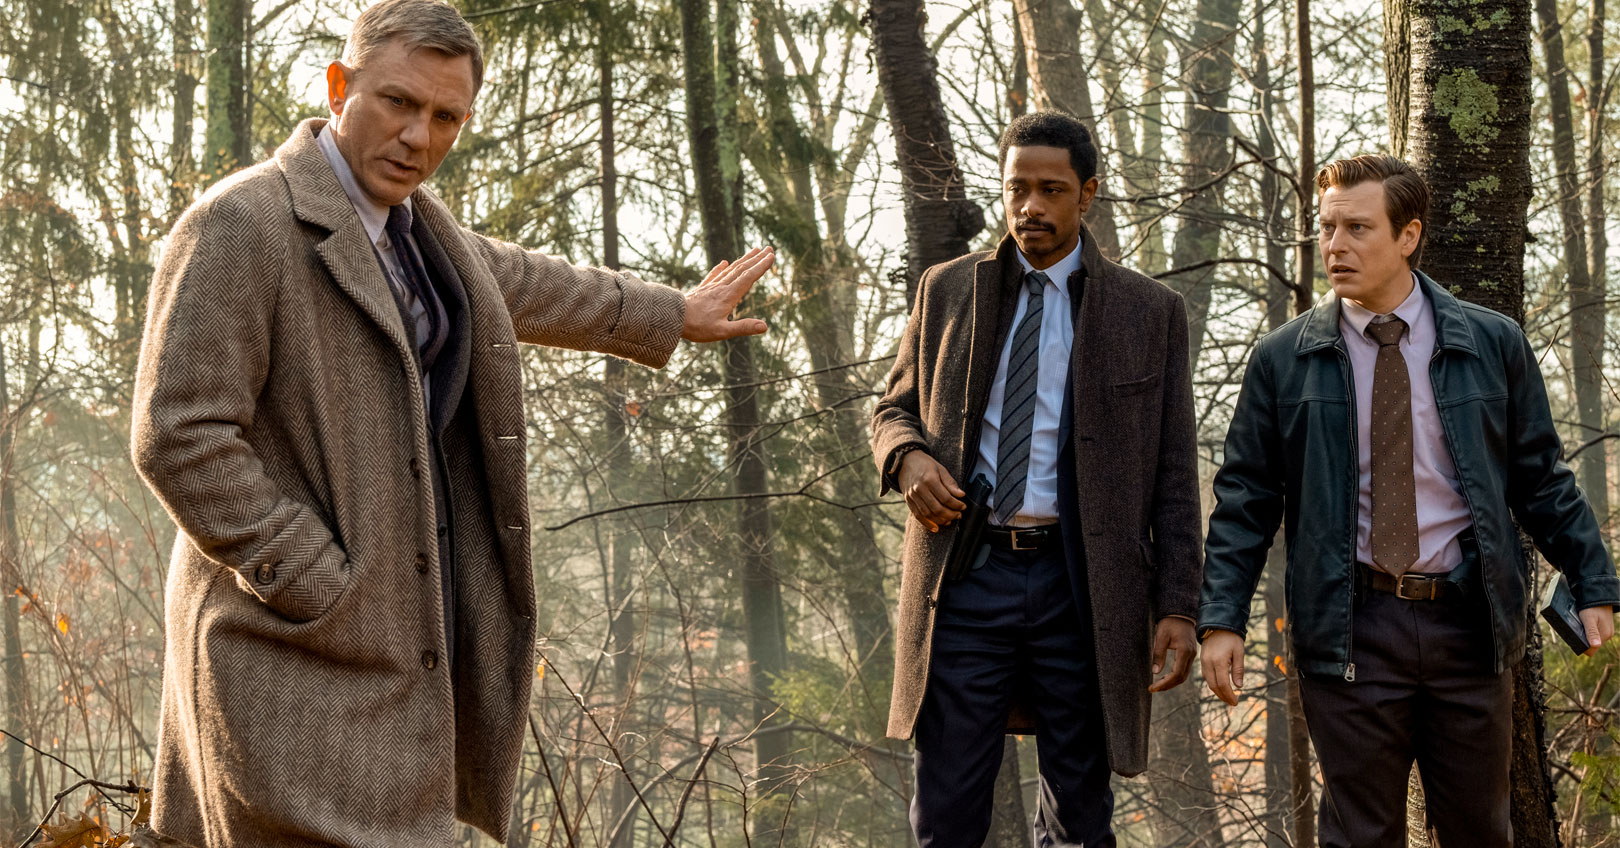 Knives Out - Daniel Craig, LaKeith Stanfield, and Noah Segan